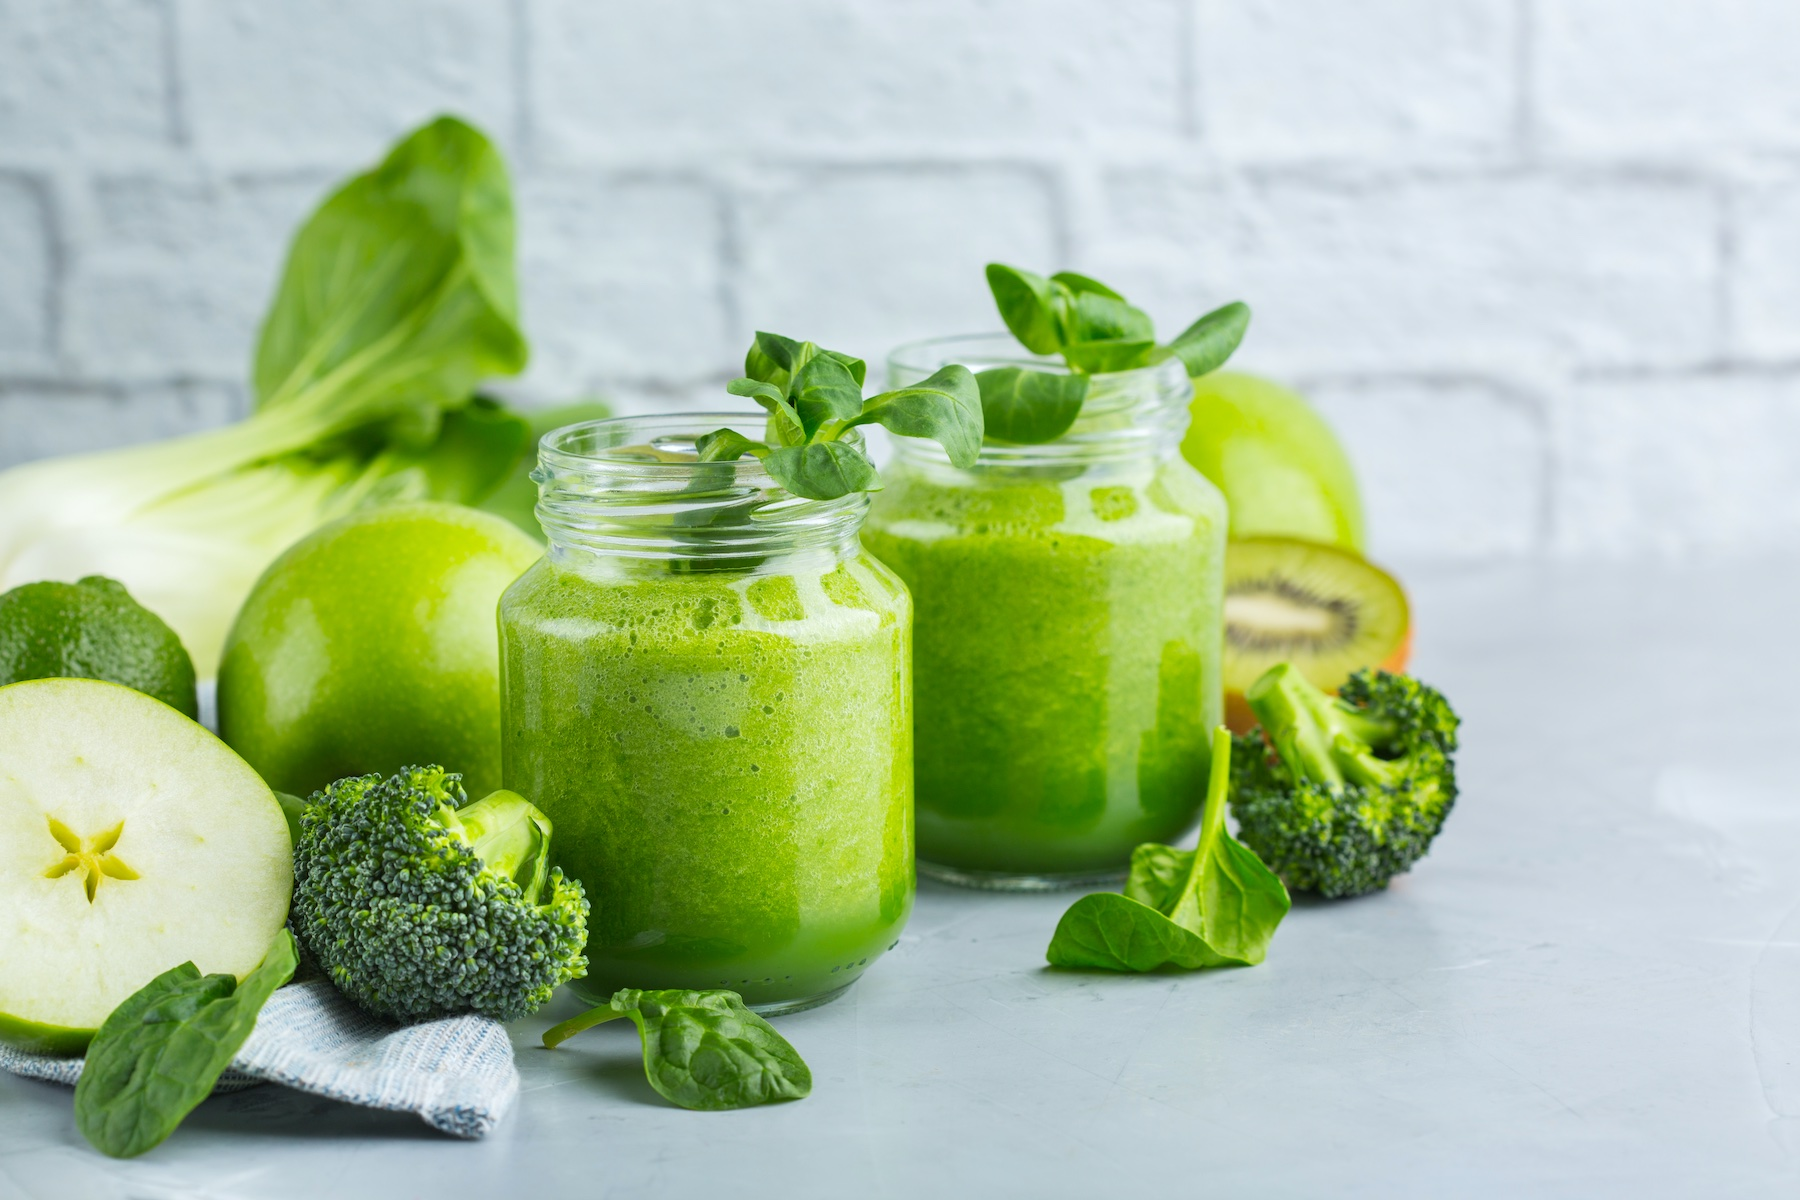 Two green juices in glass jars with green vegetables surrounding